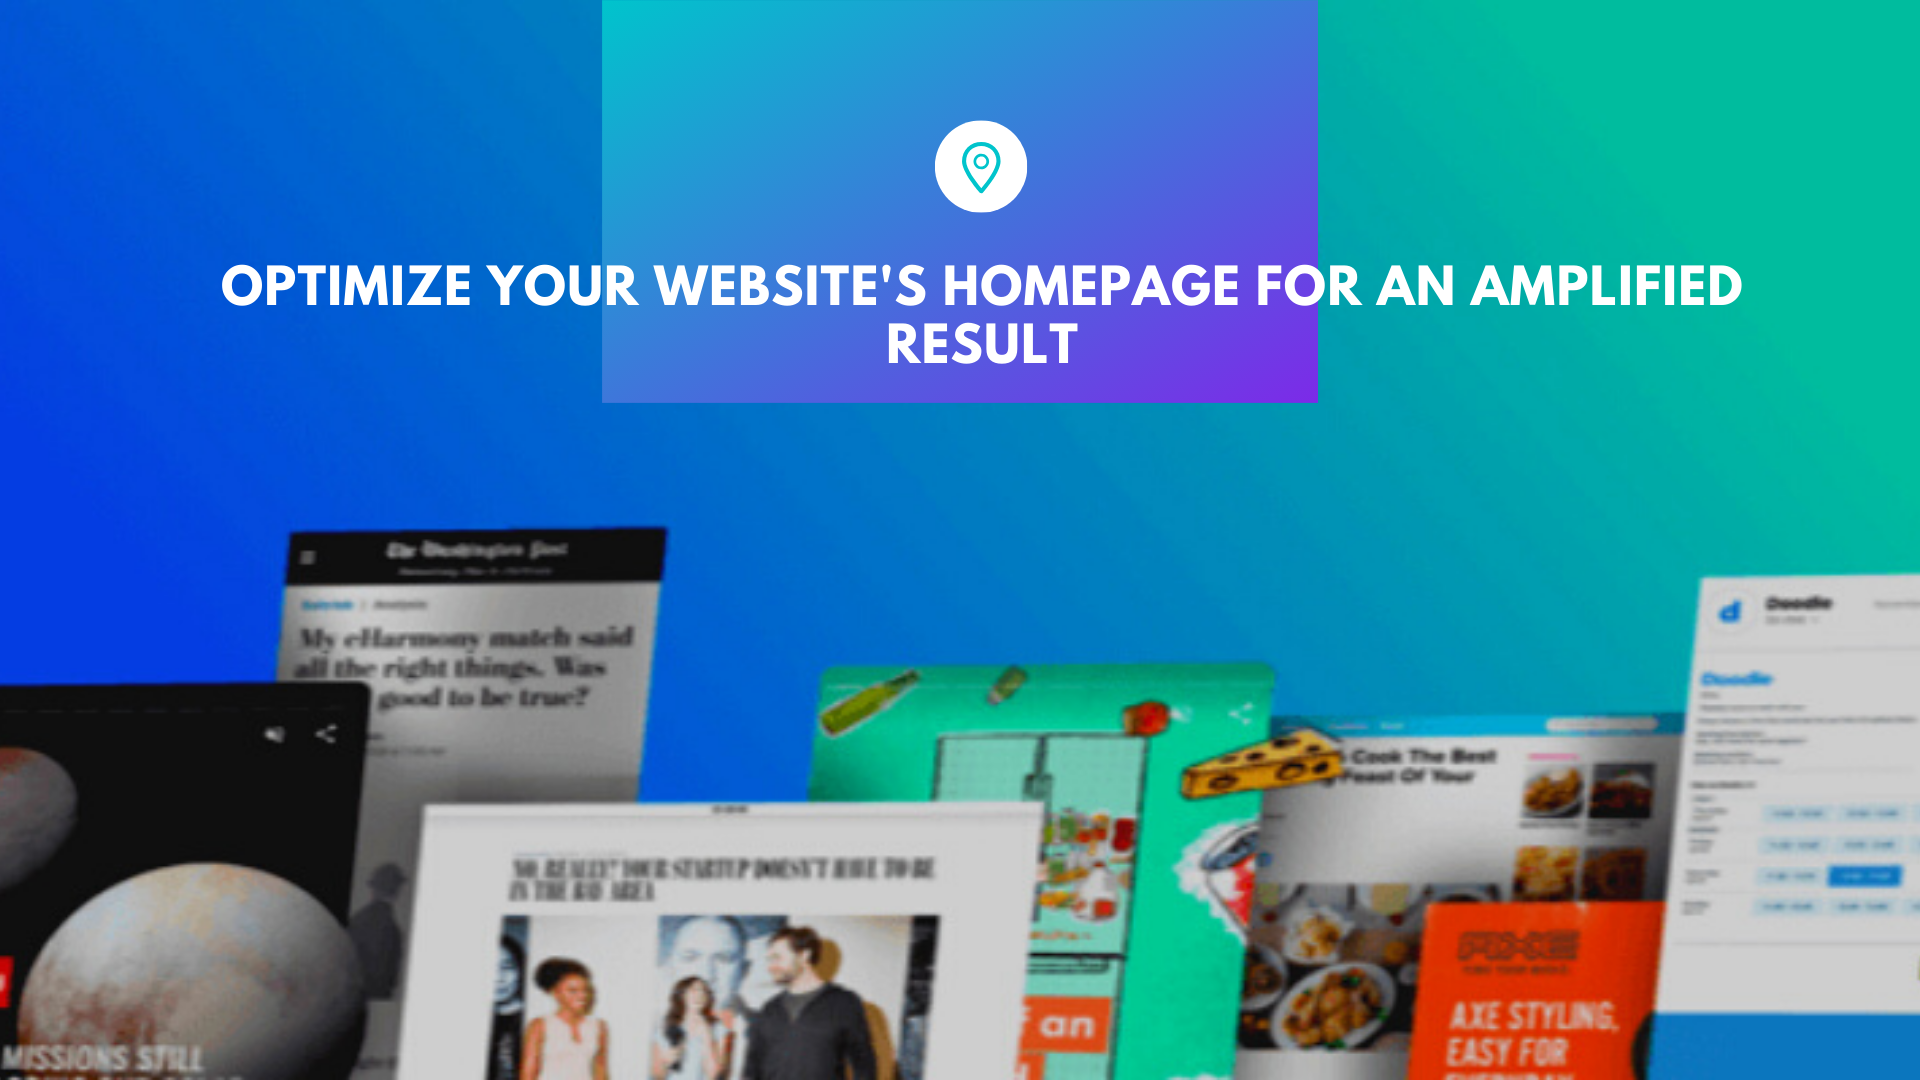 Optimize Your Website's Homepage for an Amplified Result